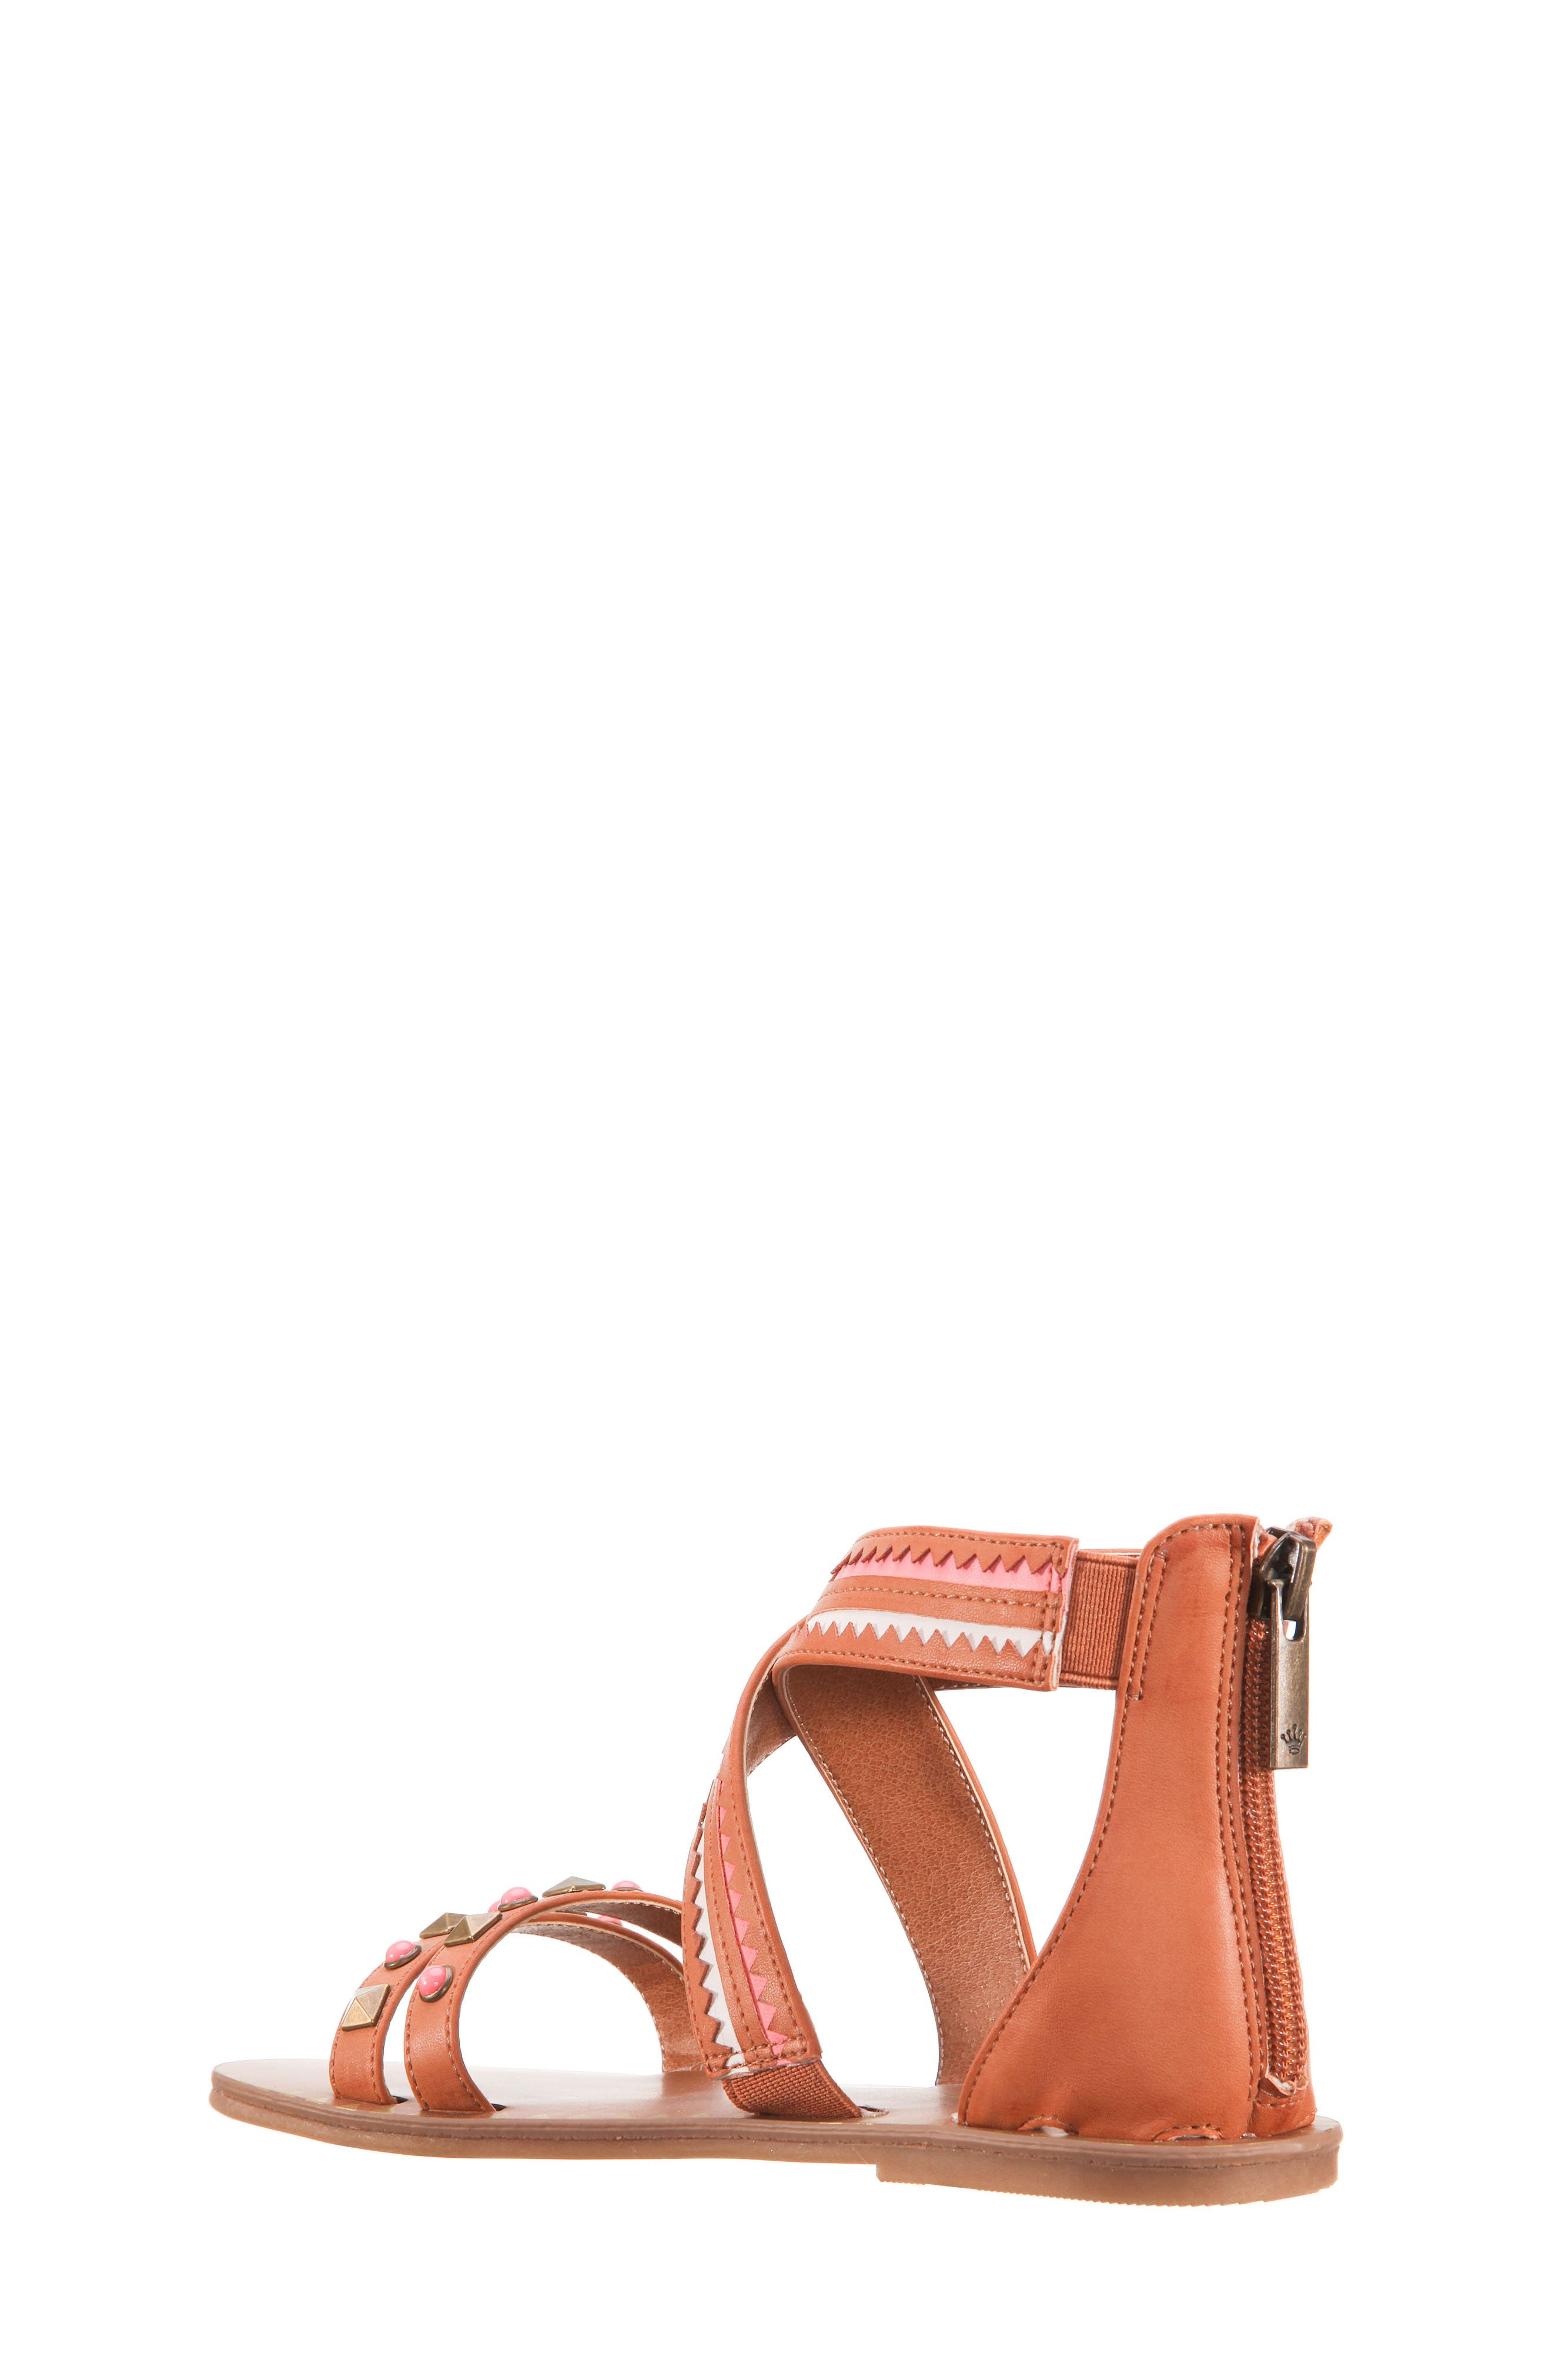 Phelisha Embellished Gladiator Sandal,                             Alternate thumbnail 2, color,                             Tan Burnished